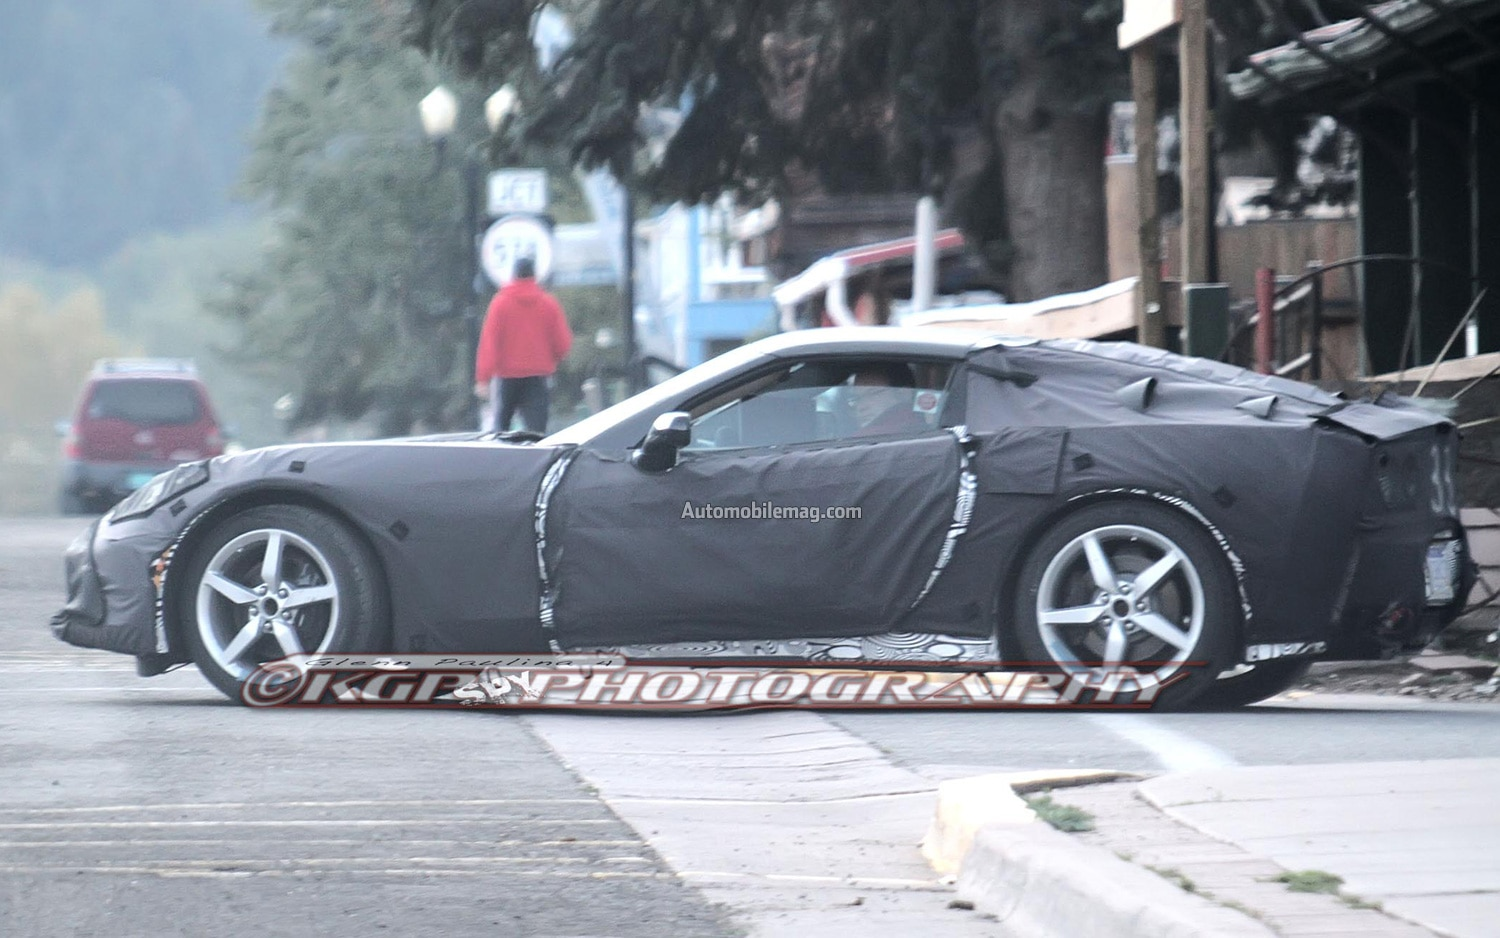 2014 Chevrolet Corvette C7 Spy Photo Profile 711